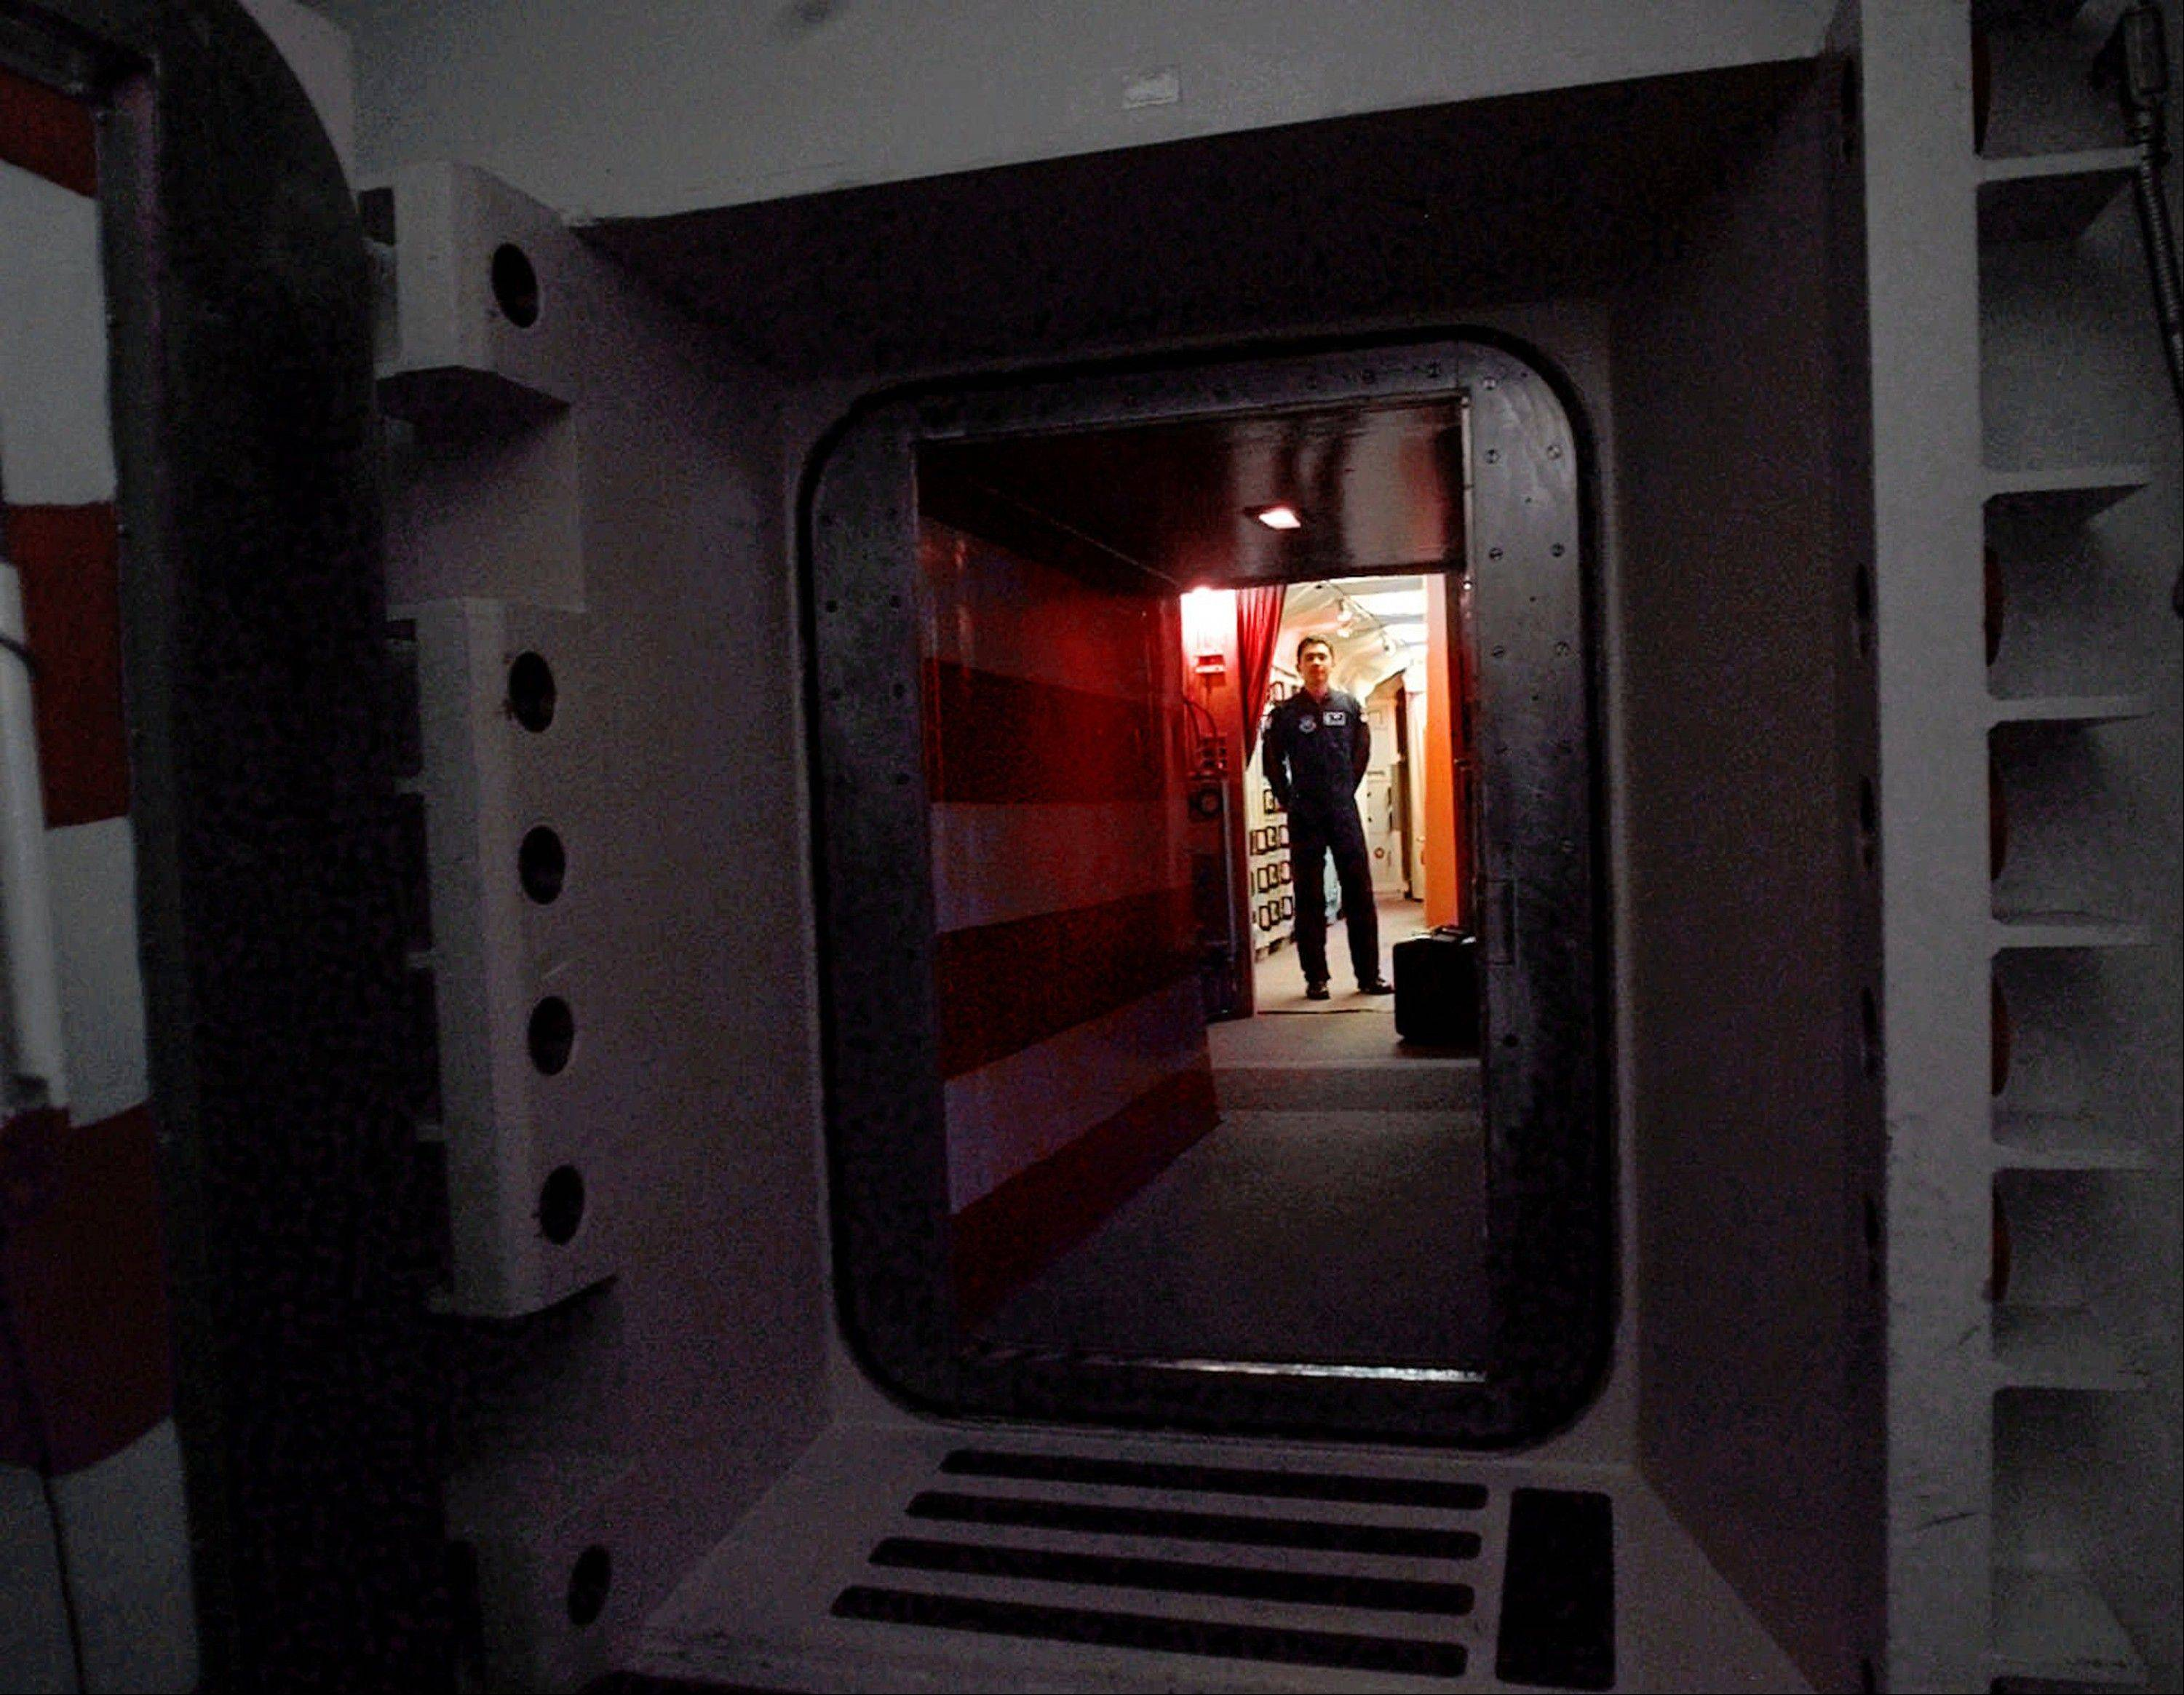 This April 15, 1997, file photo shows an Air Force missile crew commander standing at the door of his launch capsule 100-feet under ground where he and his partner are responsible for 10 nuclear-armed ICBM�s, in north-central Colorado. Trouble inside the Air Force�s nuclear missile force runs deeper and wider than officials have let on. An unpublished study for the Air Force obtained by The Associated Press cites �burnout� among launch officers with their finger on the trigger of 450 weapons of mass destruction. And this: evidence of broader behavioral issues across the intercontinental ballistic missile force, including sexual assault and domestic violence.